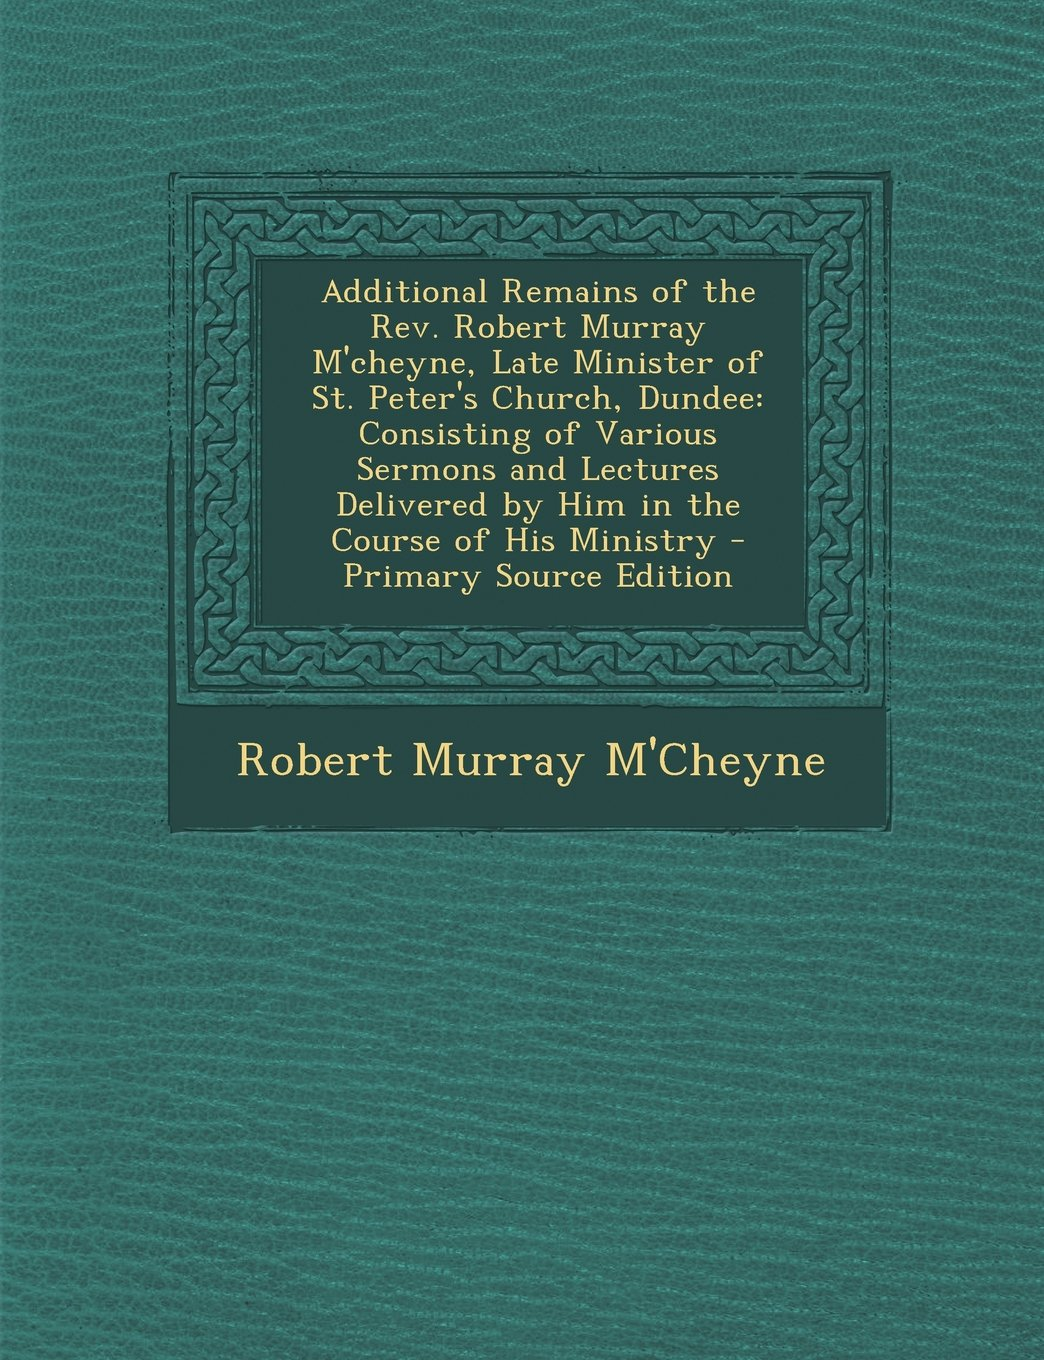 Download Additional Remains of the Rev. Robert Murray M'cheyne, Late Minister of St. Peter's Church, Dundee: Consisting of Various Sermons and Lectures Delivered by Him in the Course of His Ministry pdf epub